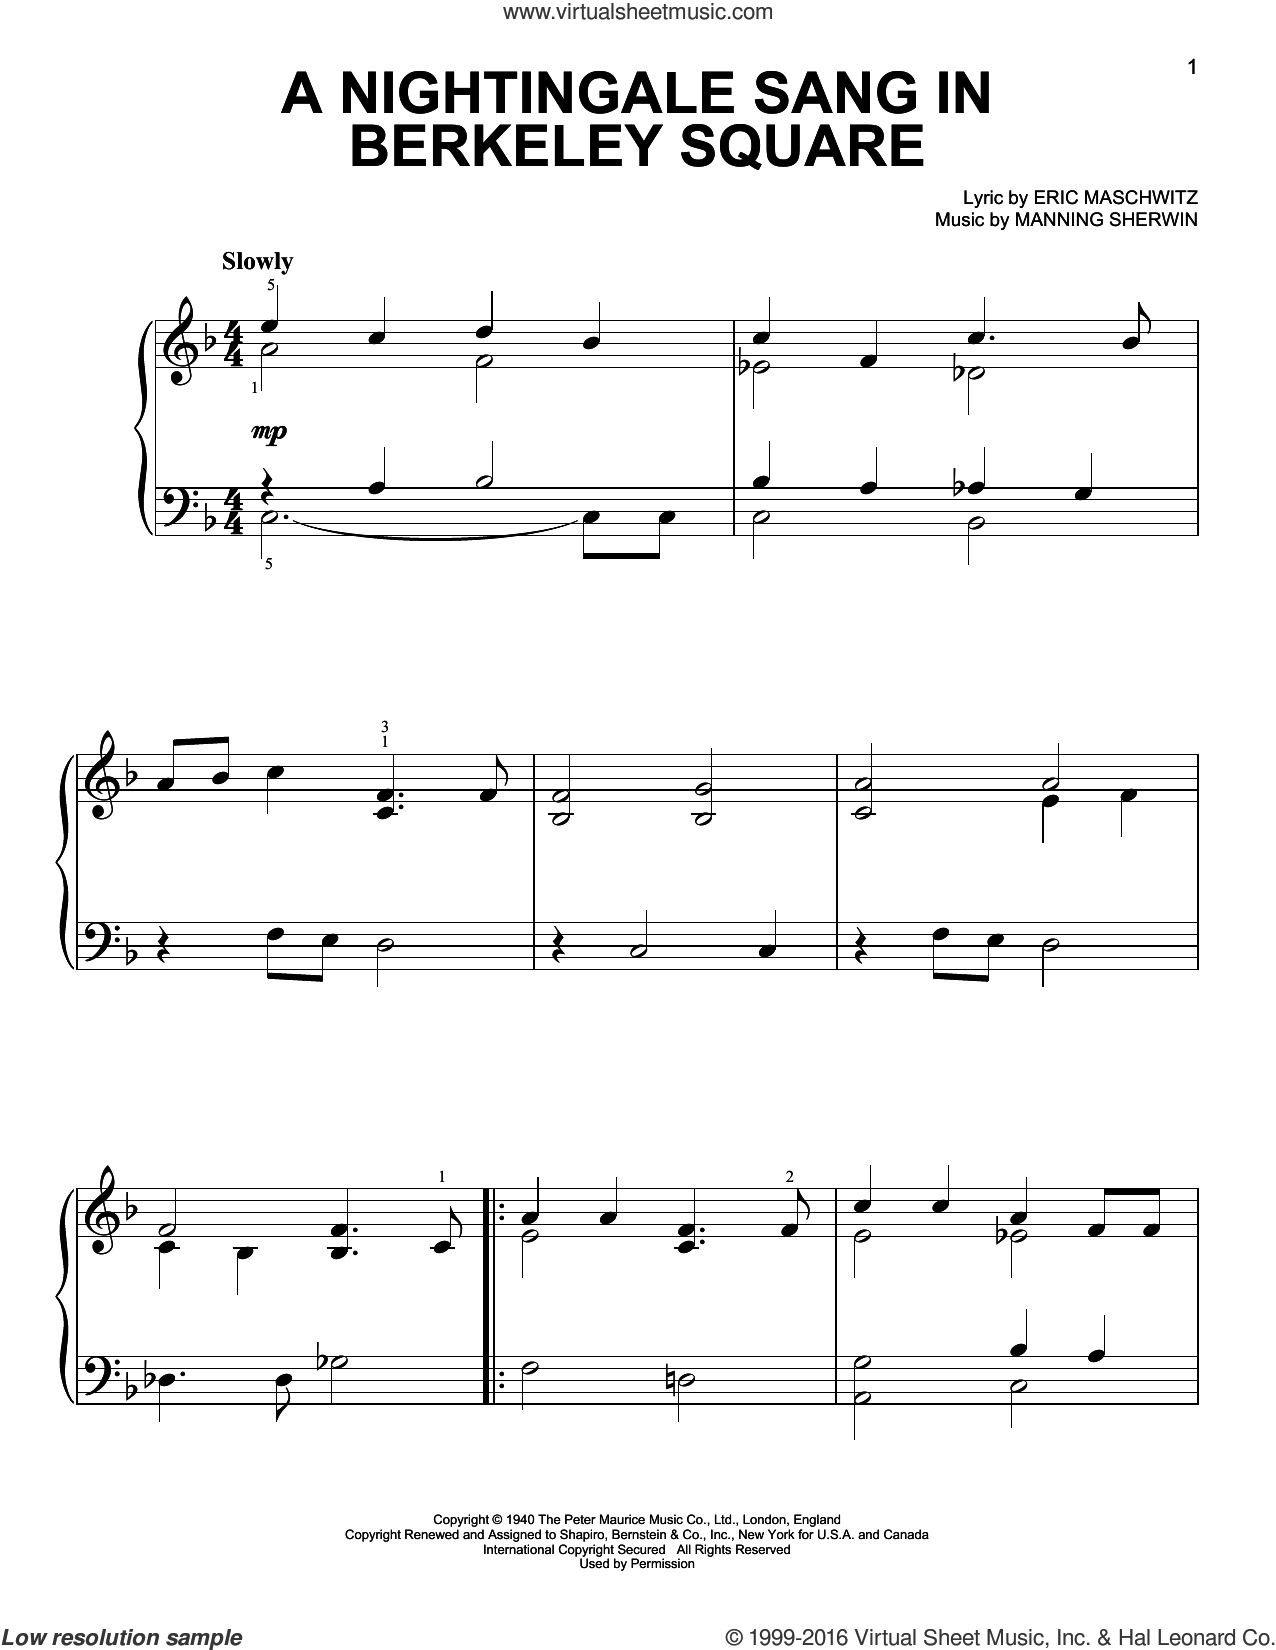 A Nightingale Sang In Berkeley Square, (easy) sheet music for piano solo by Manhattan Transfer, Eric Maschwitz and Manning Sherwin, easy skill level